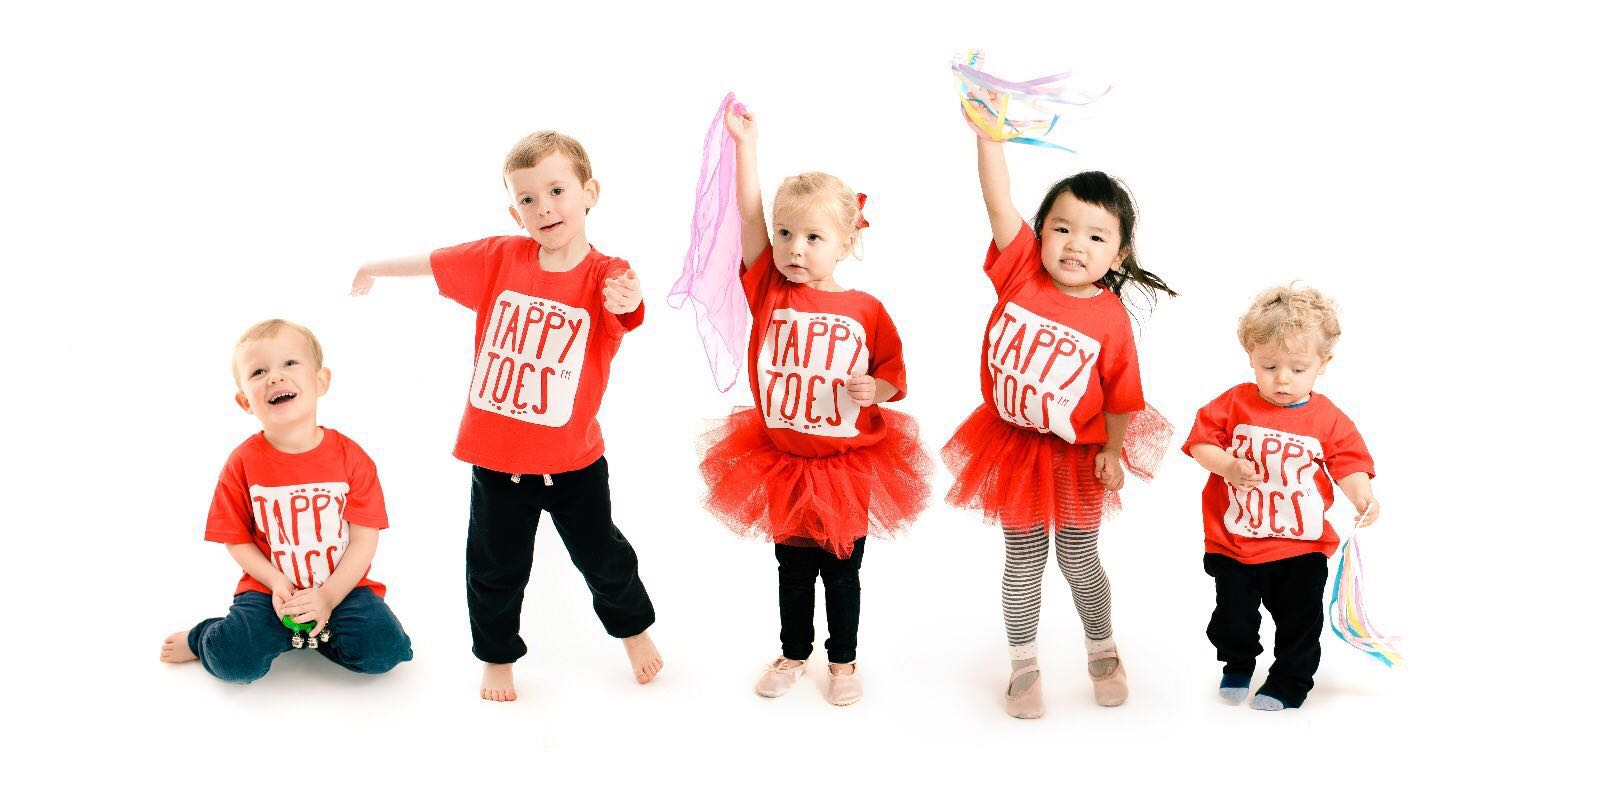 Tappy Toes toddler dancers